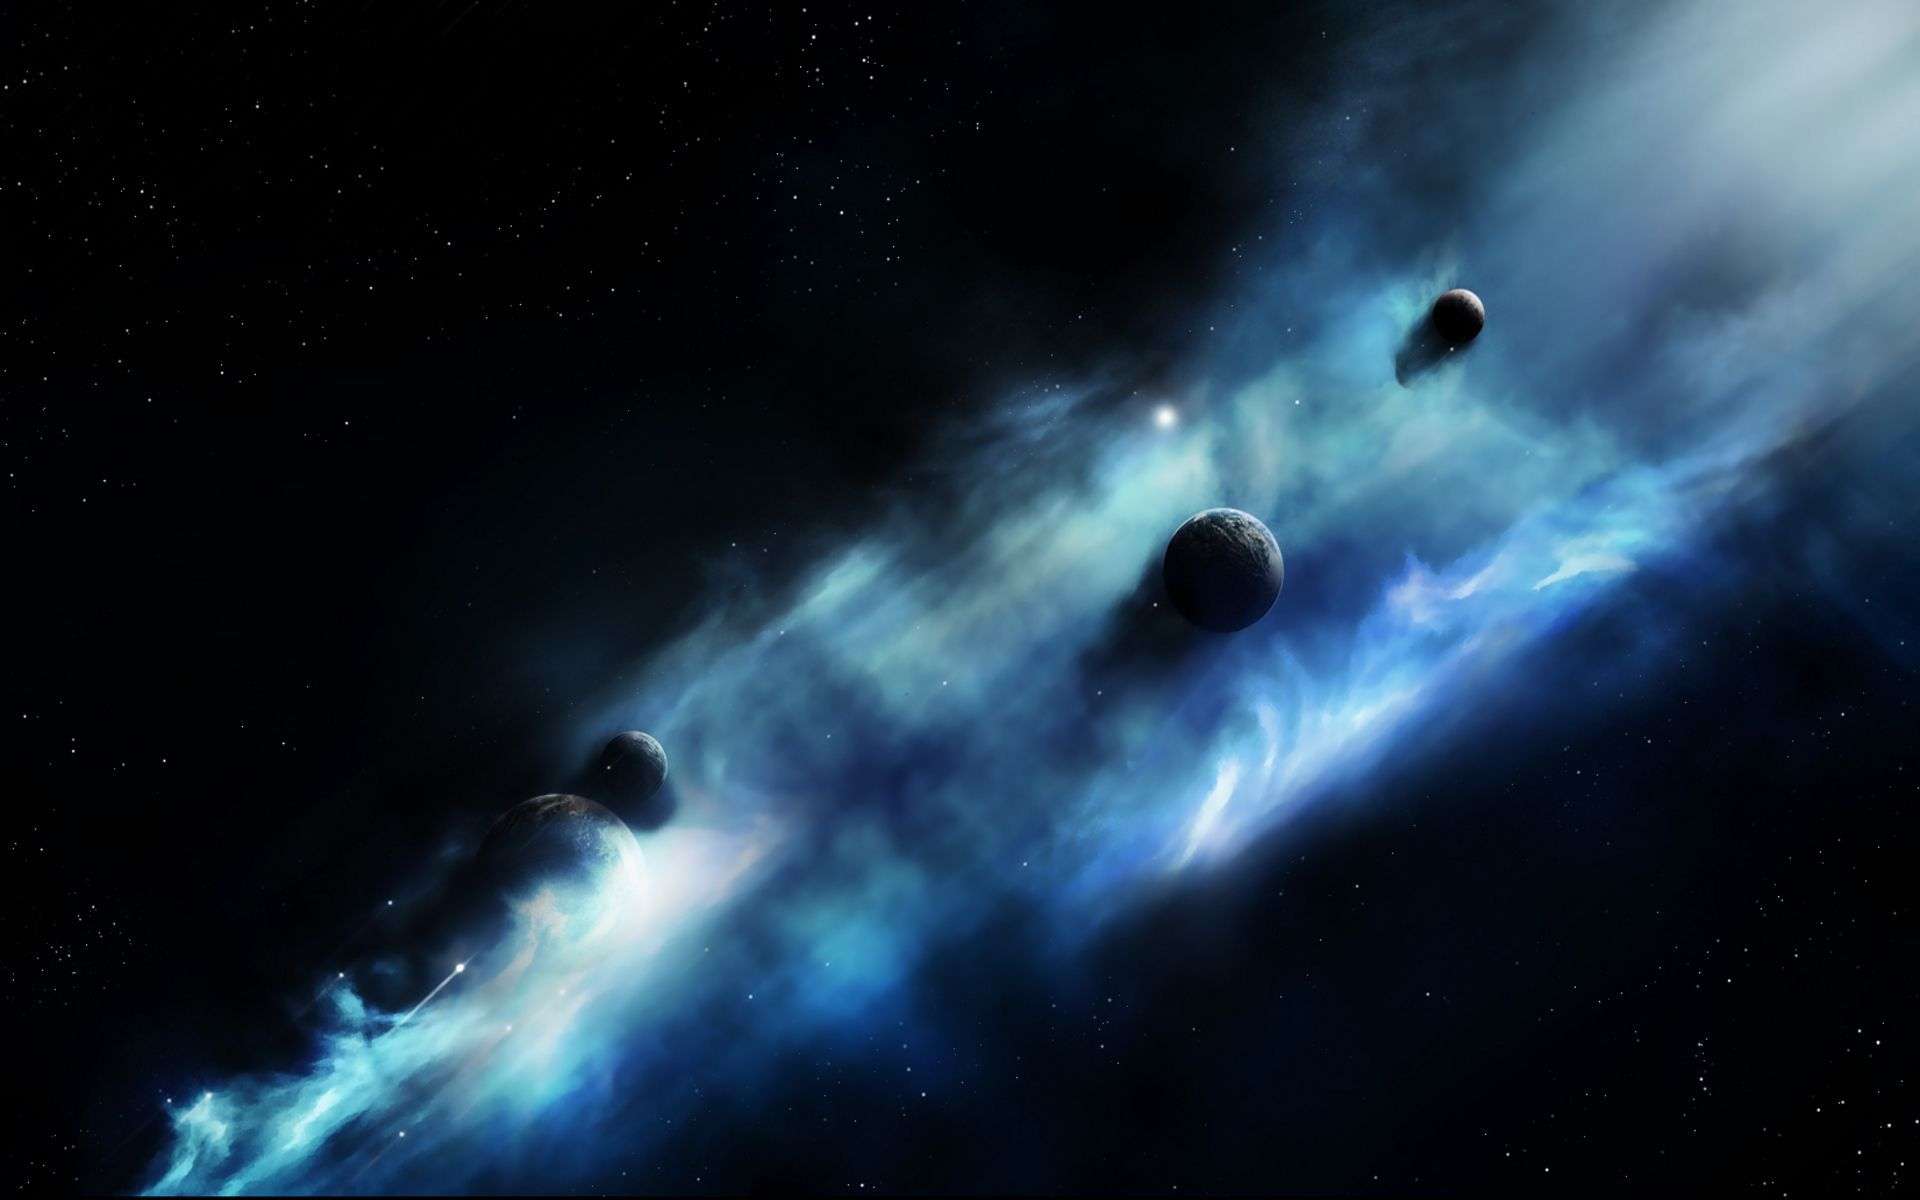 space satellite hd desktop wallpaper widescreen high